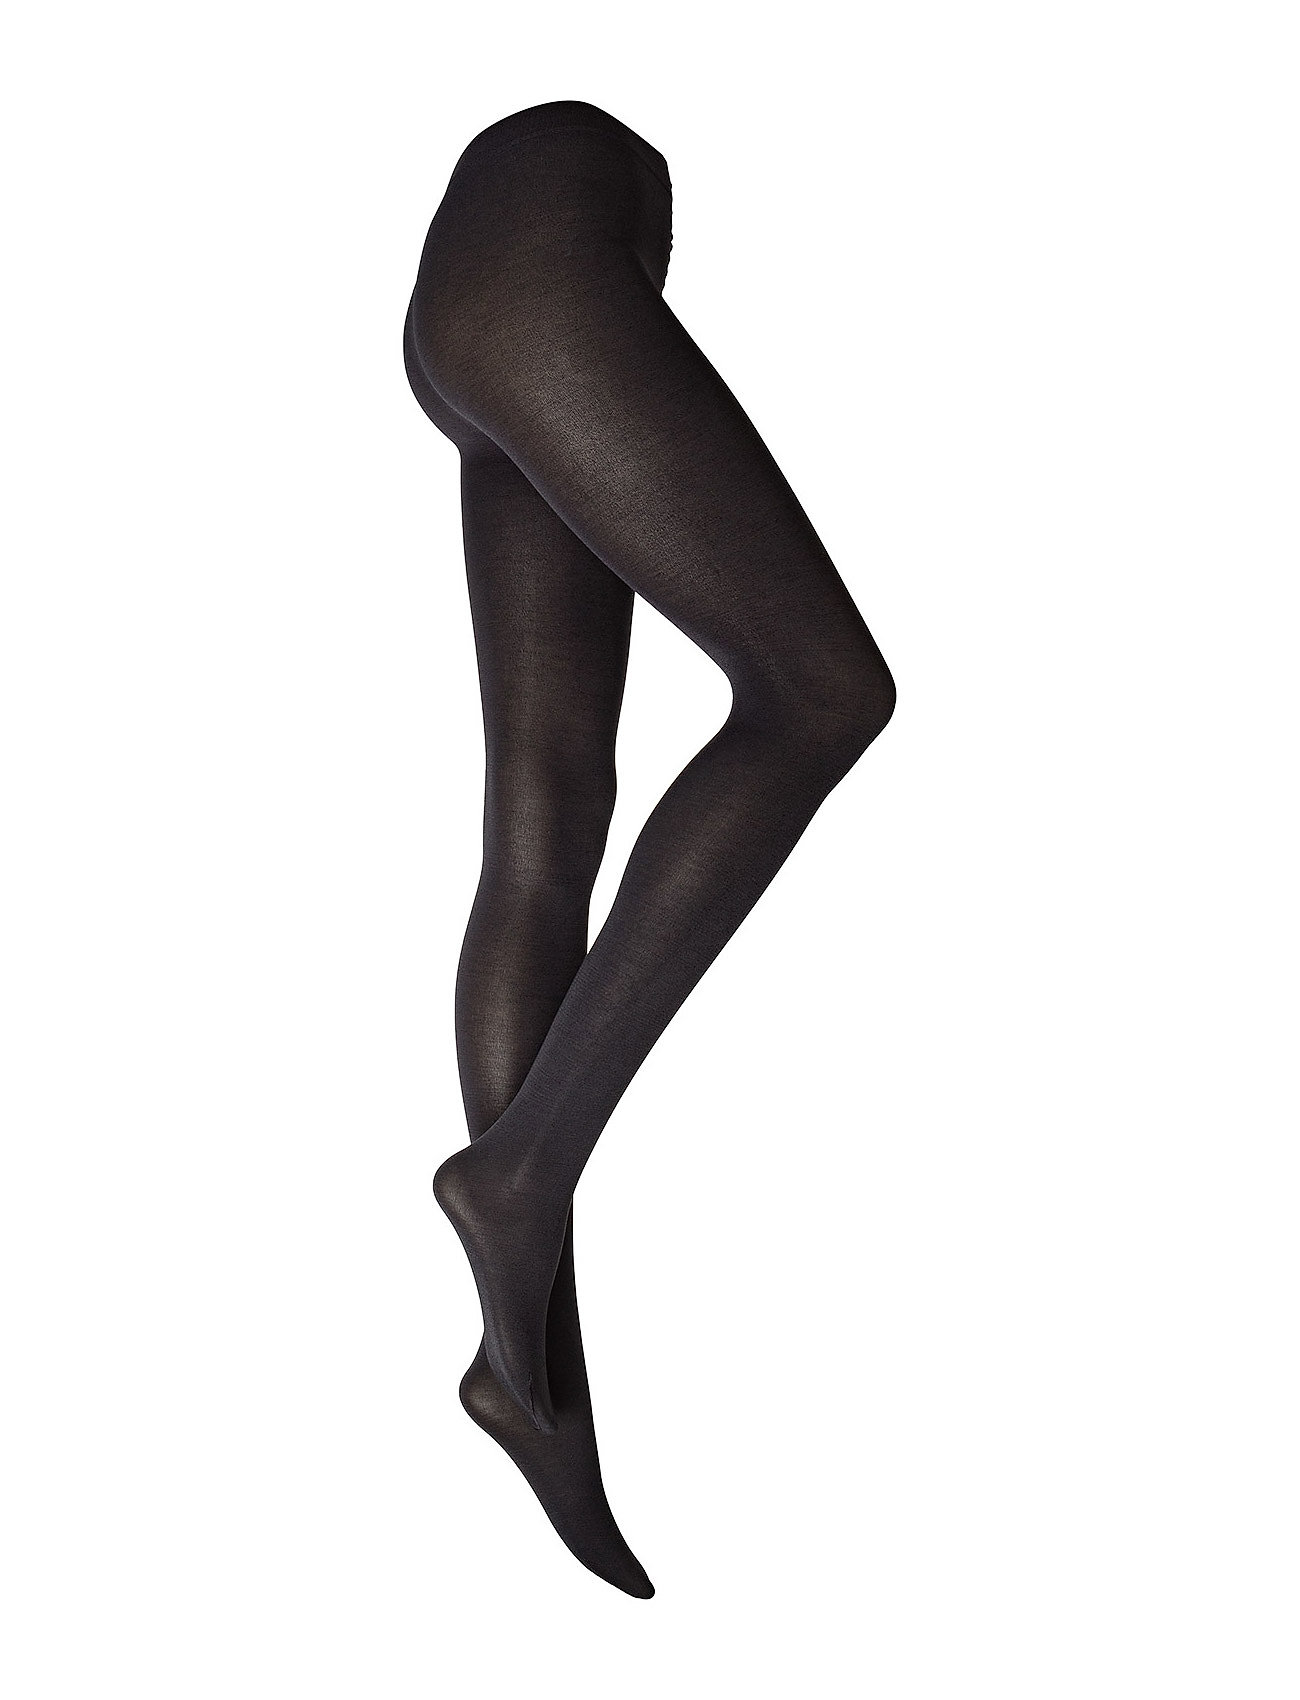 Image of Cotton Touch Ti Lingerie Socks Grå Falke Women (2807546869)